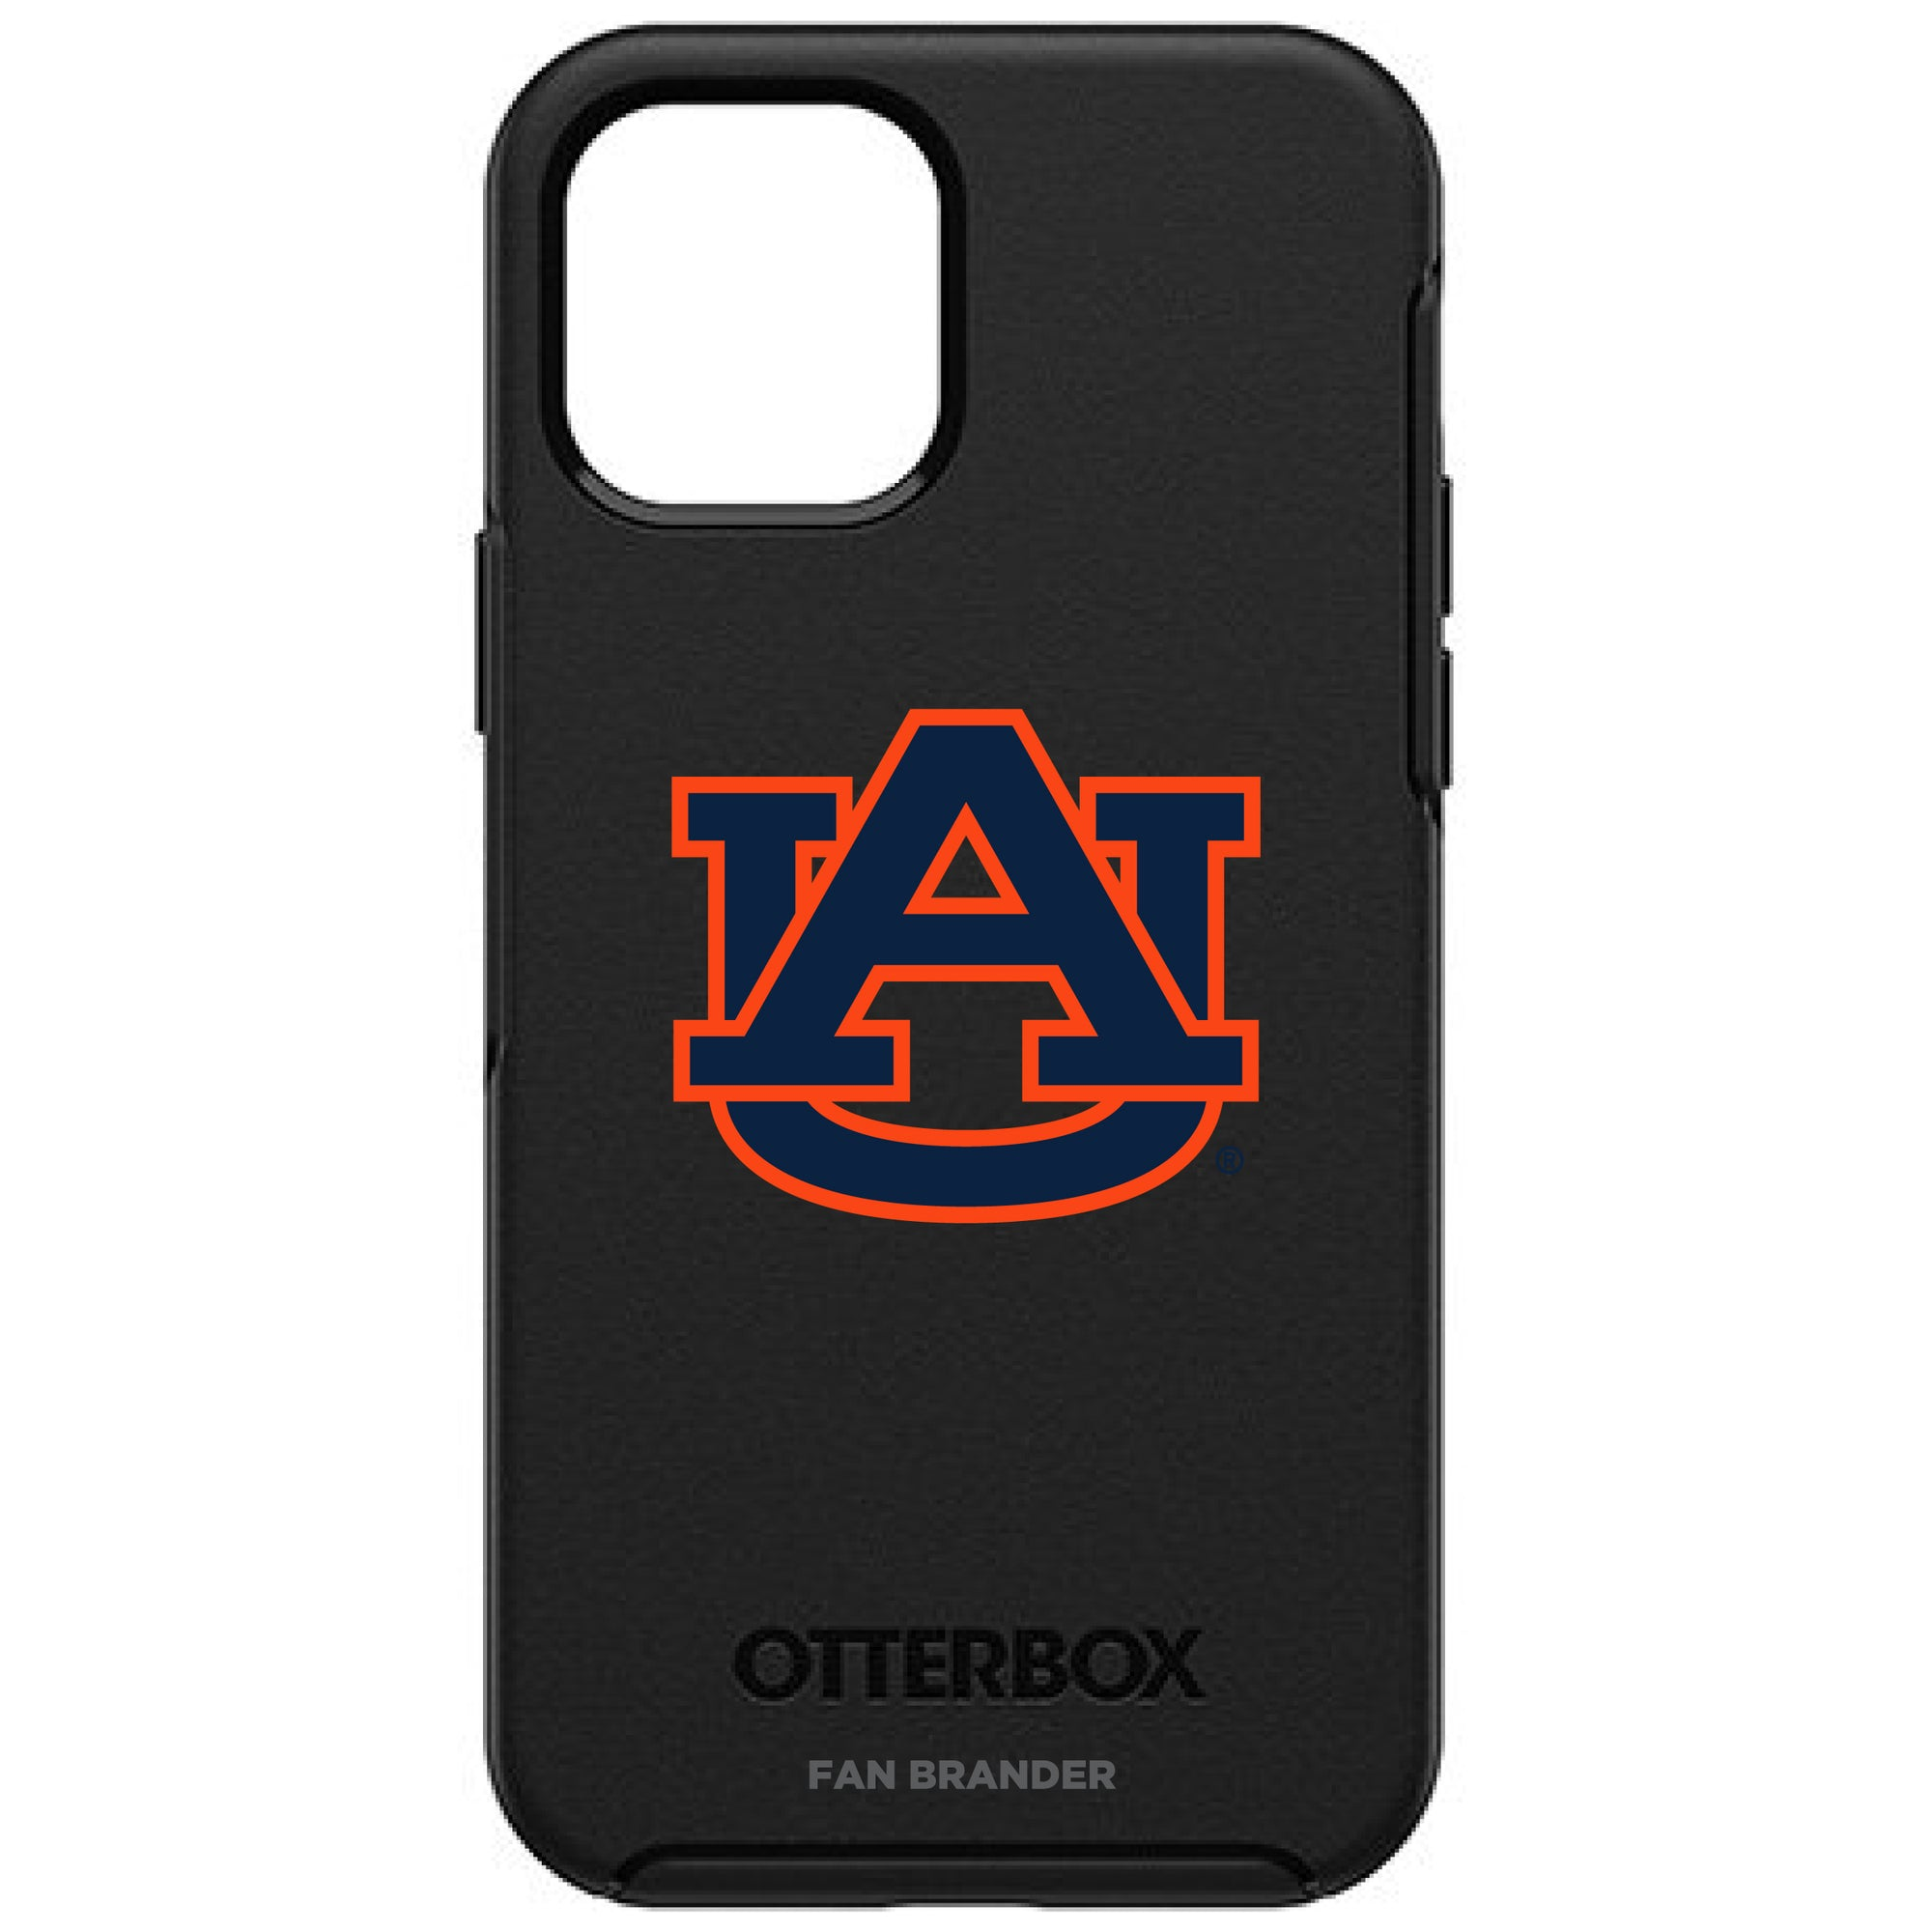 Auburn Tigers Otterbox iPhone 12 and iPhone 12 Pro Symmetry Case